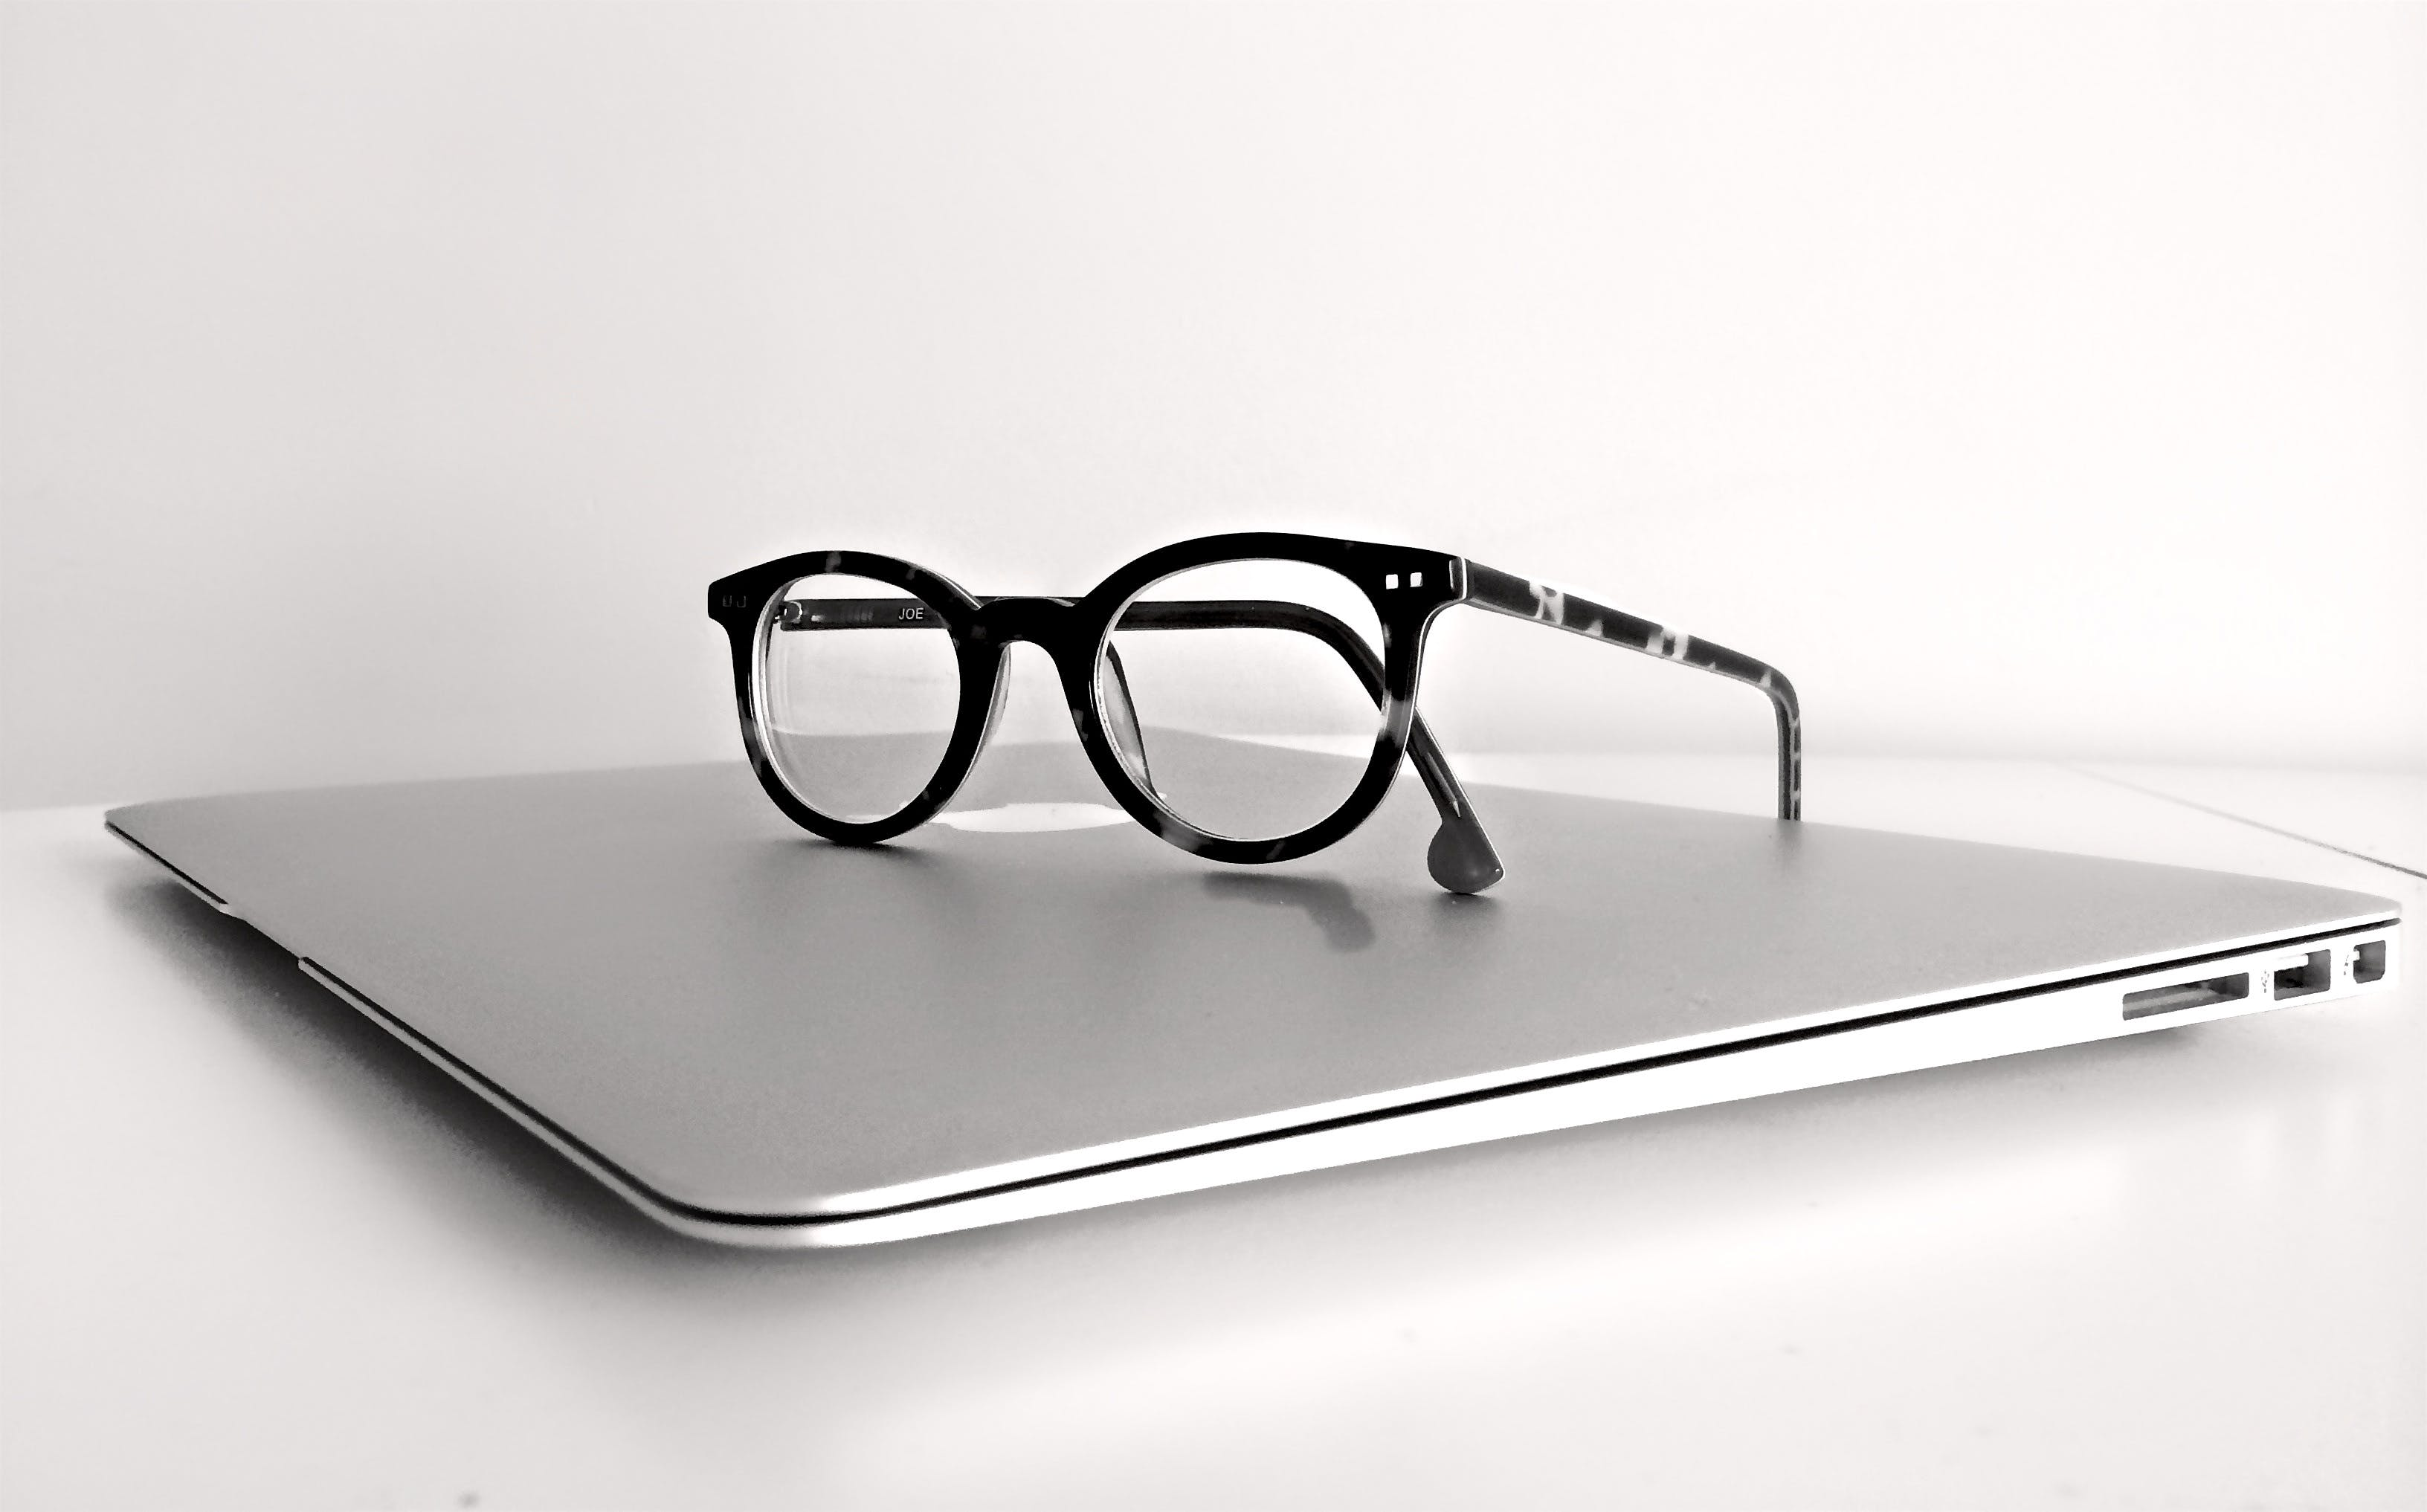 Black Frame Eyeglasses on Silver Macbook Air